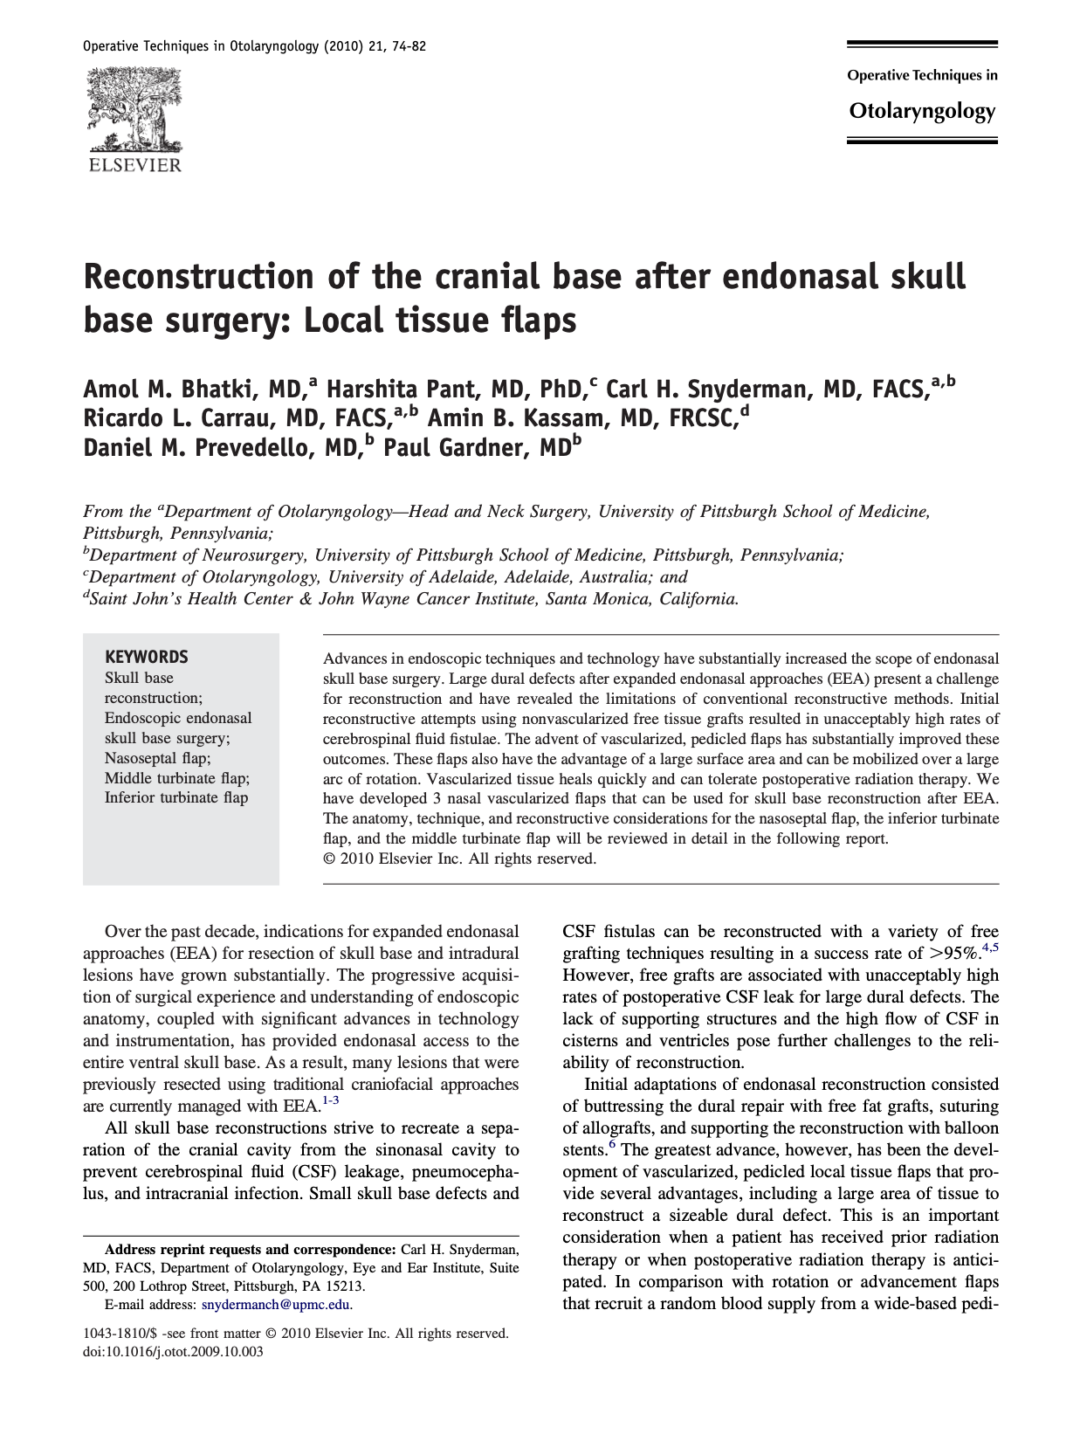 Reconstruction of the cranial base after endonasal skull base surgery: Local tissue flaps